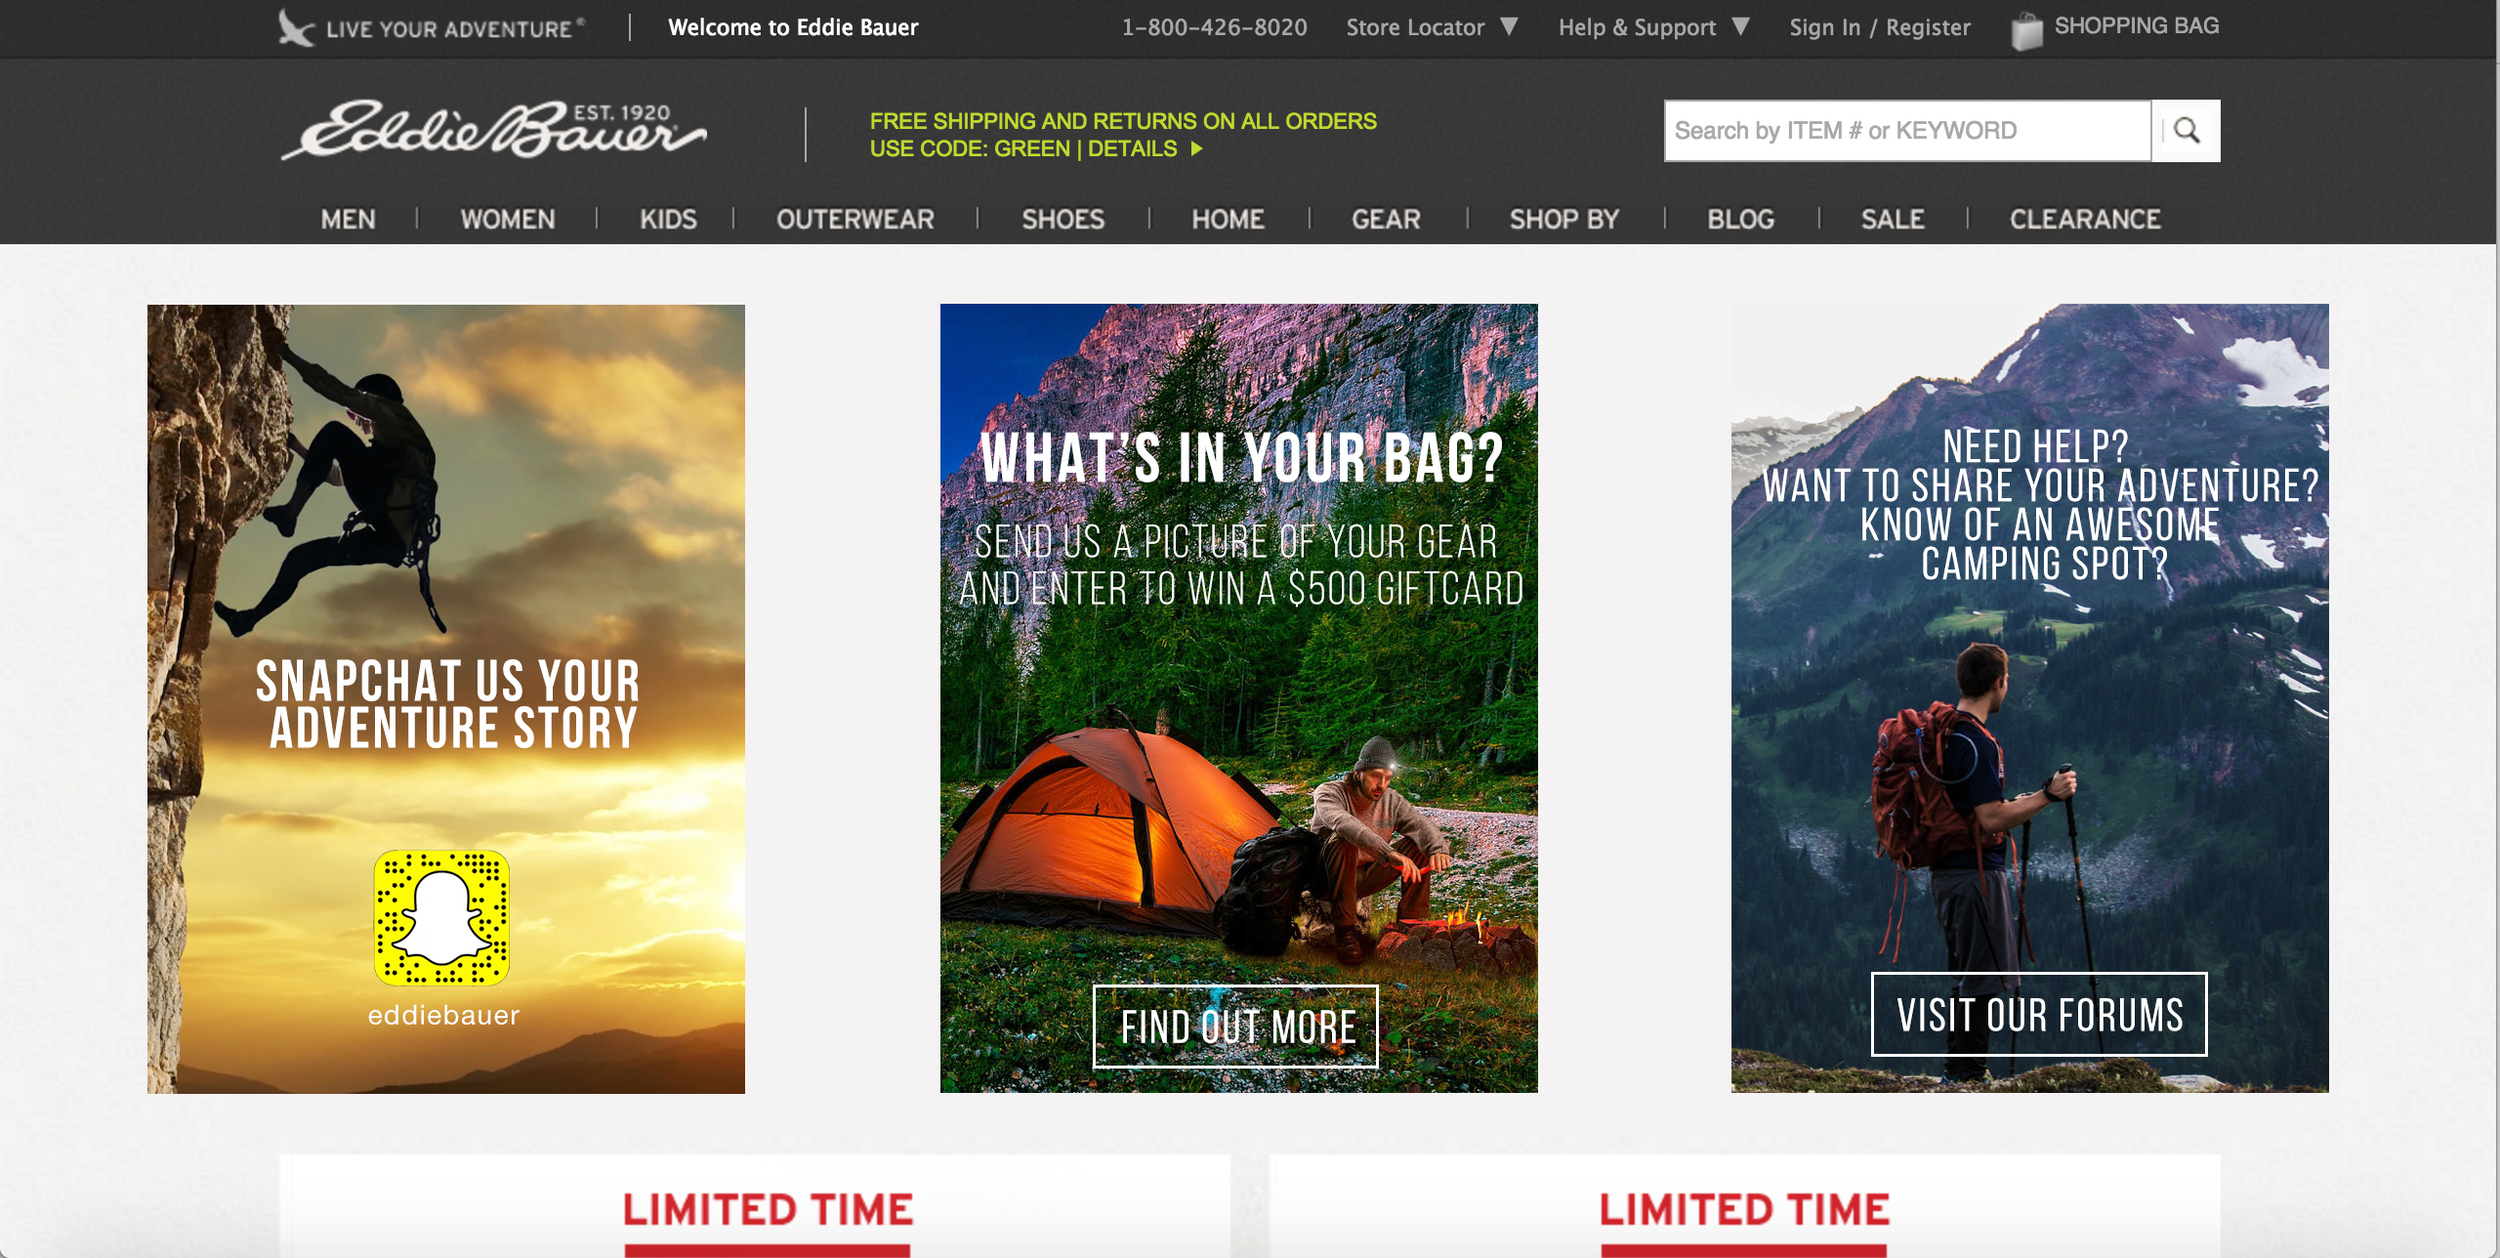 User Generated Content Spots for Eddie Bauer